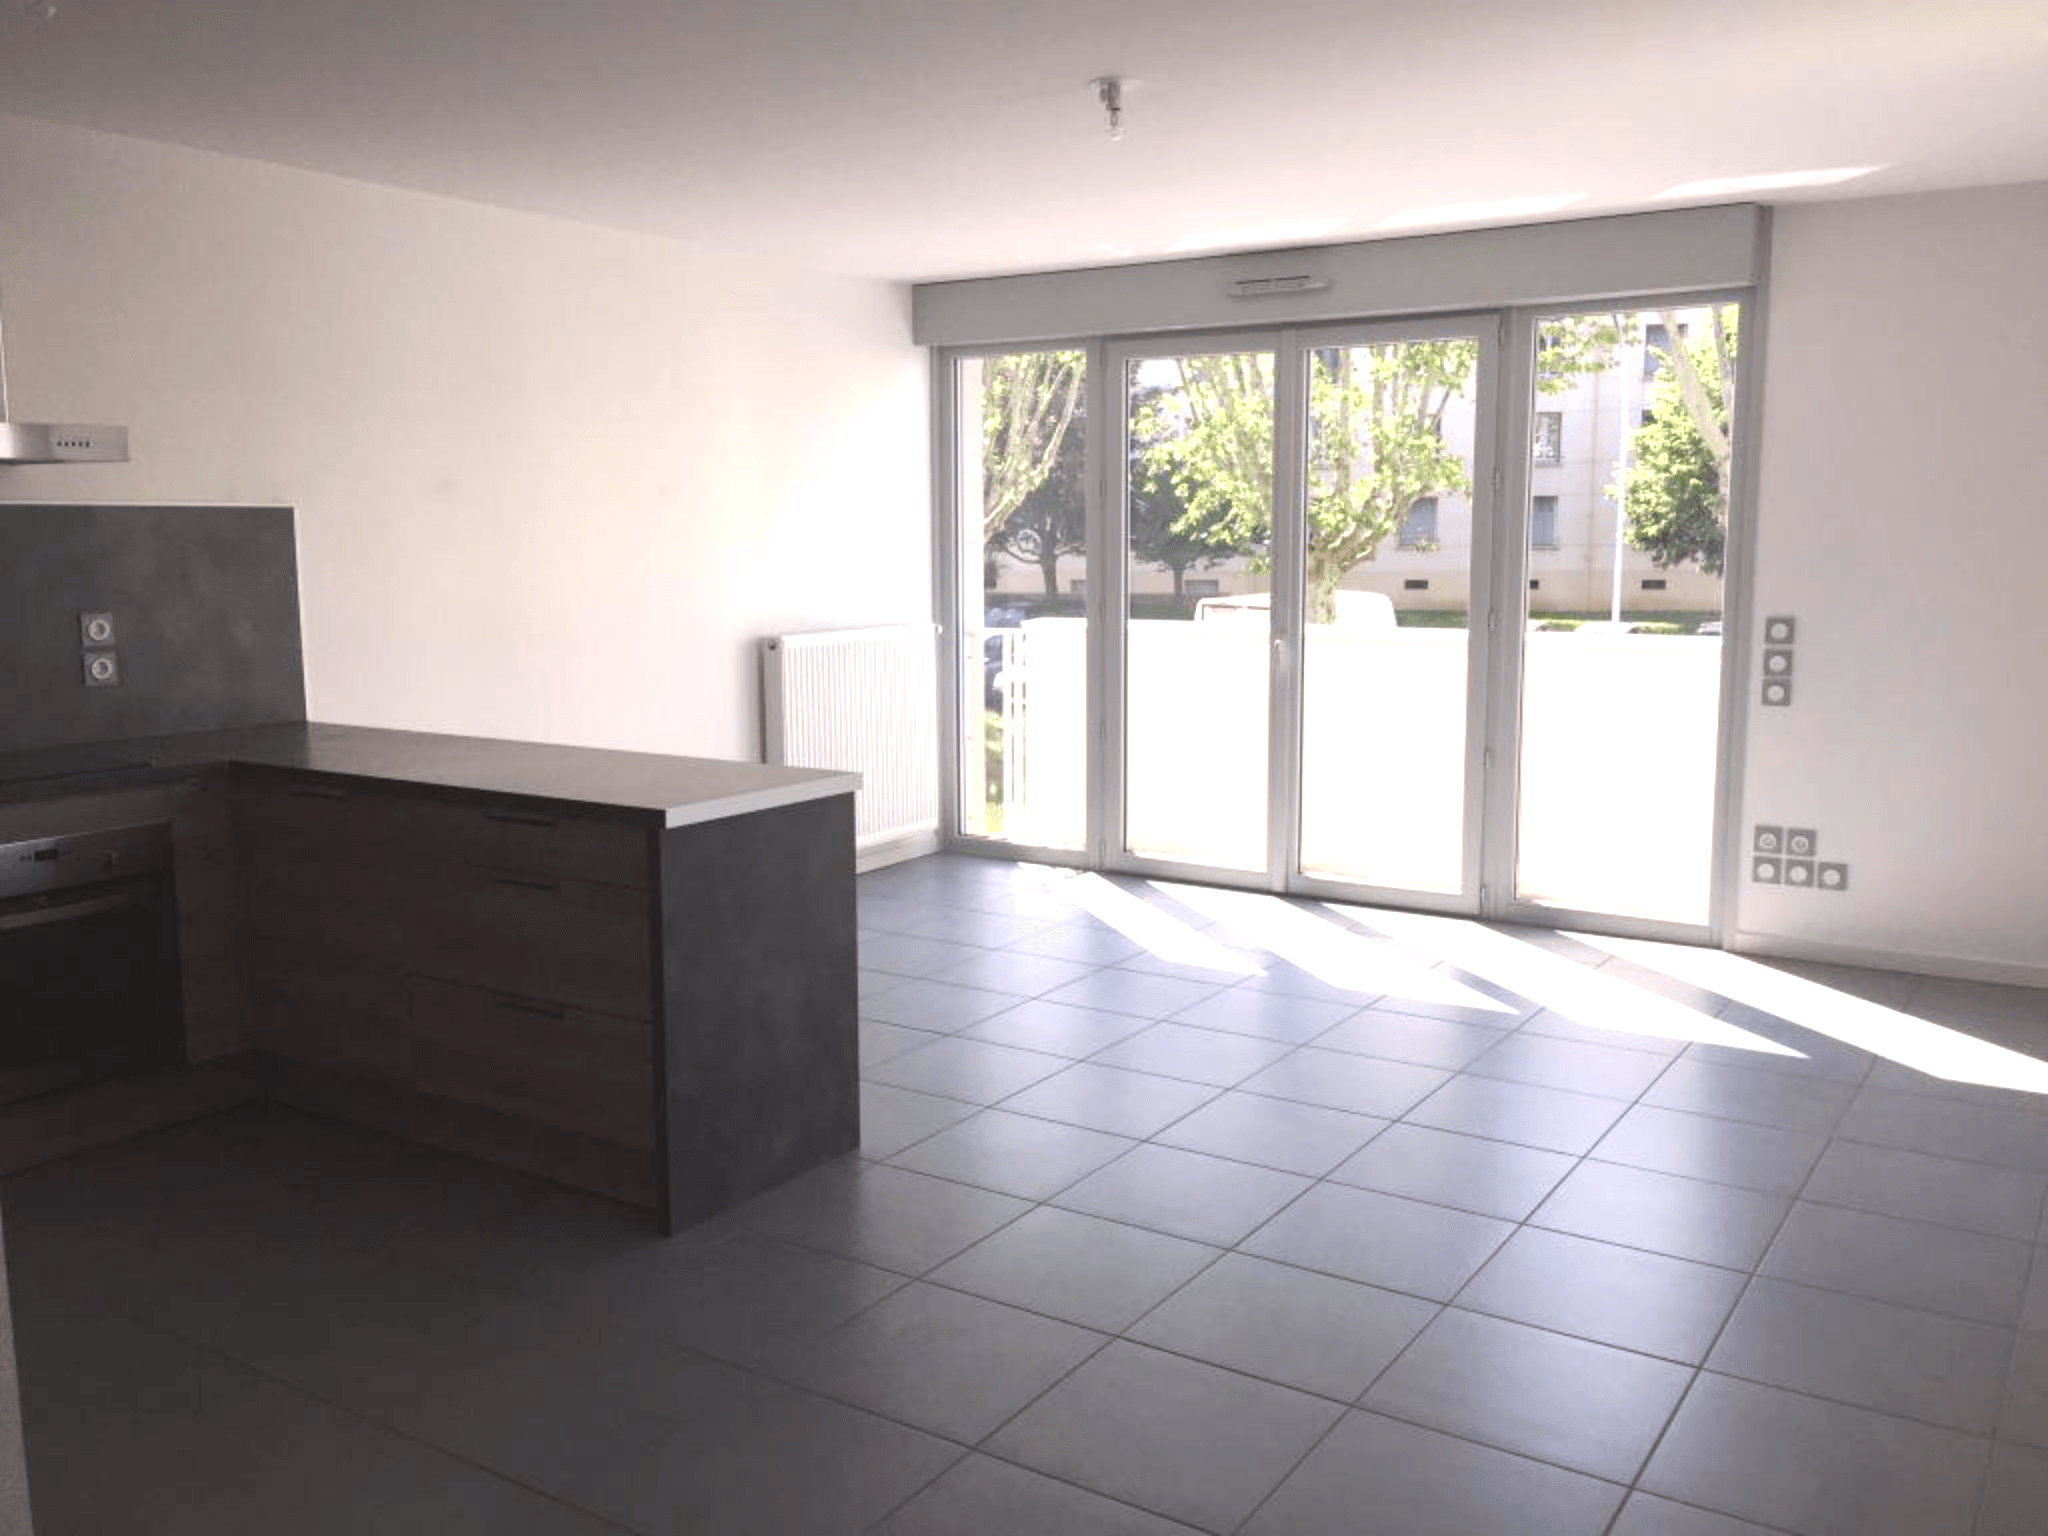 Toit Terrasse Traduction Appartement T4 79m2 Toit Terrasse Rooftop Centre Ville